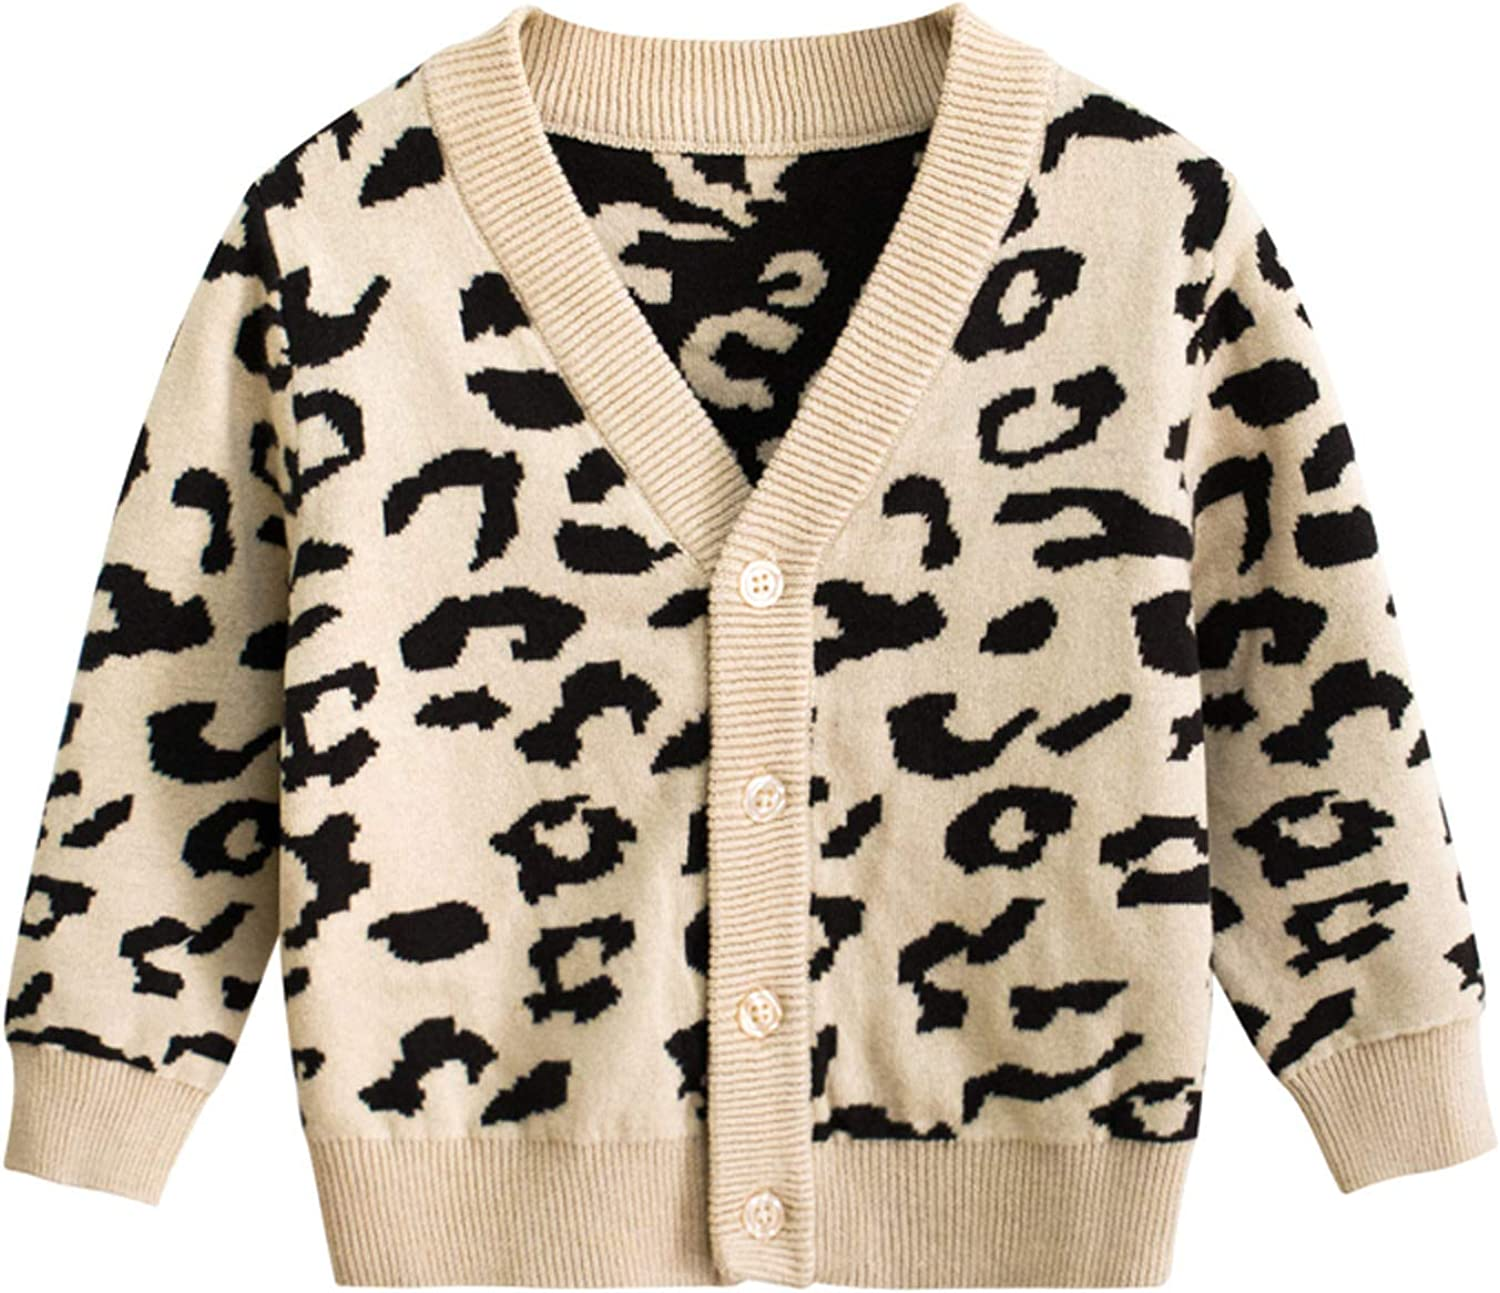 FUFUCAILLM Toddler Girl Fall San Antonio Mall Winter Leopard Sweat Outfit Outdoor Max 69% OFF